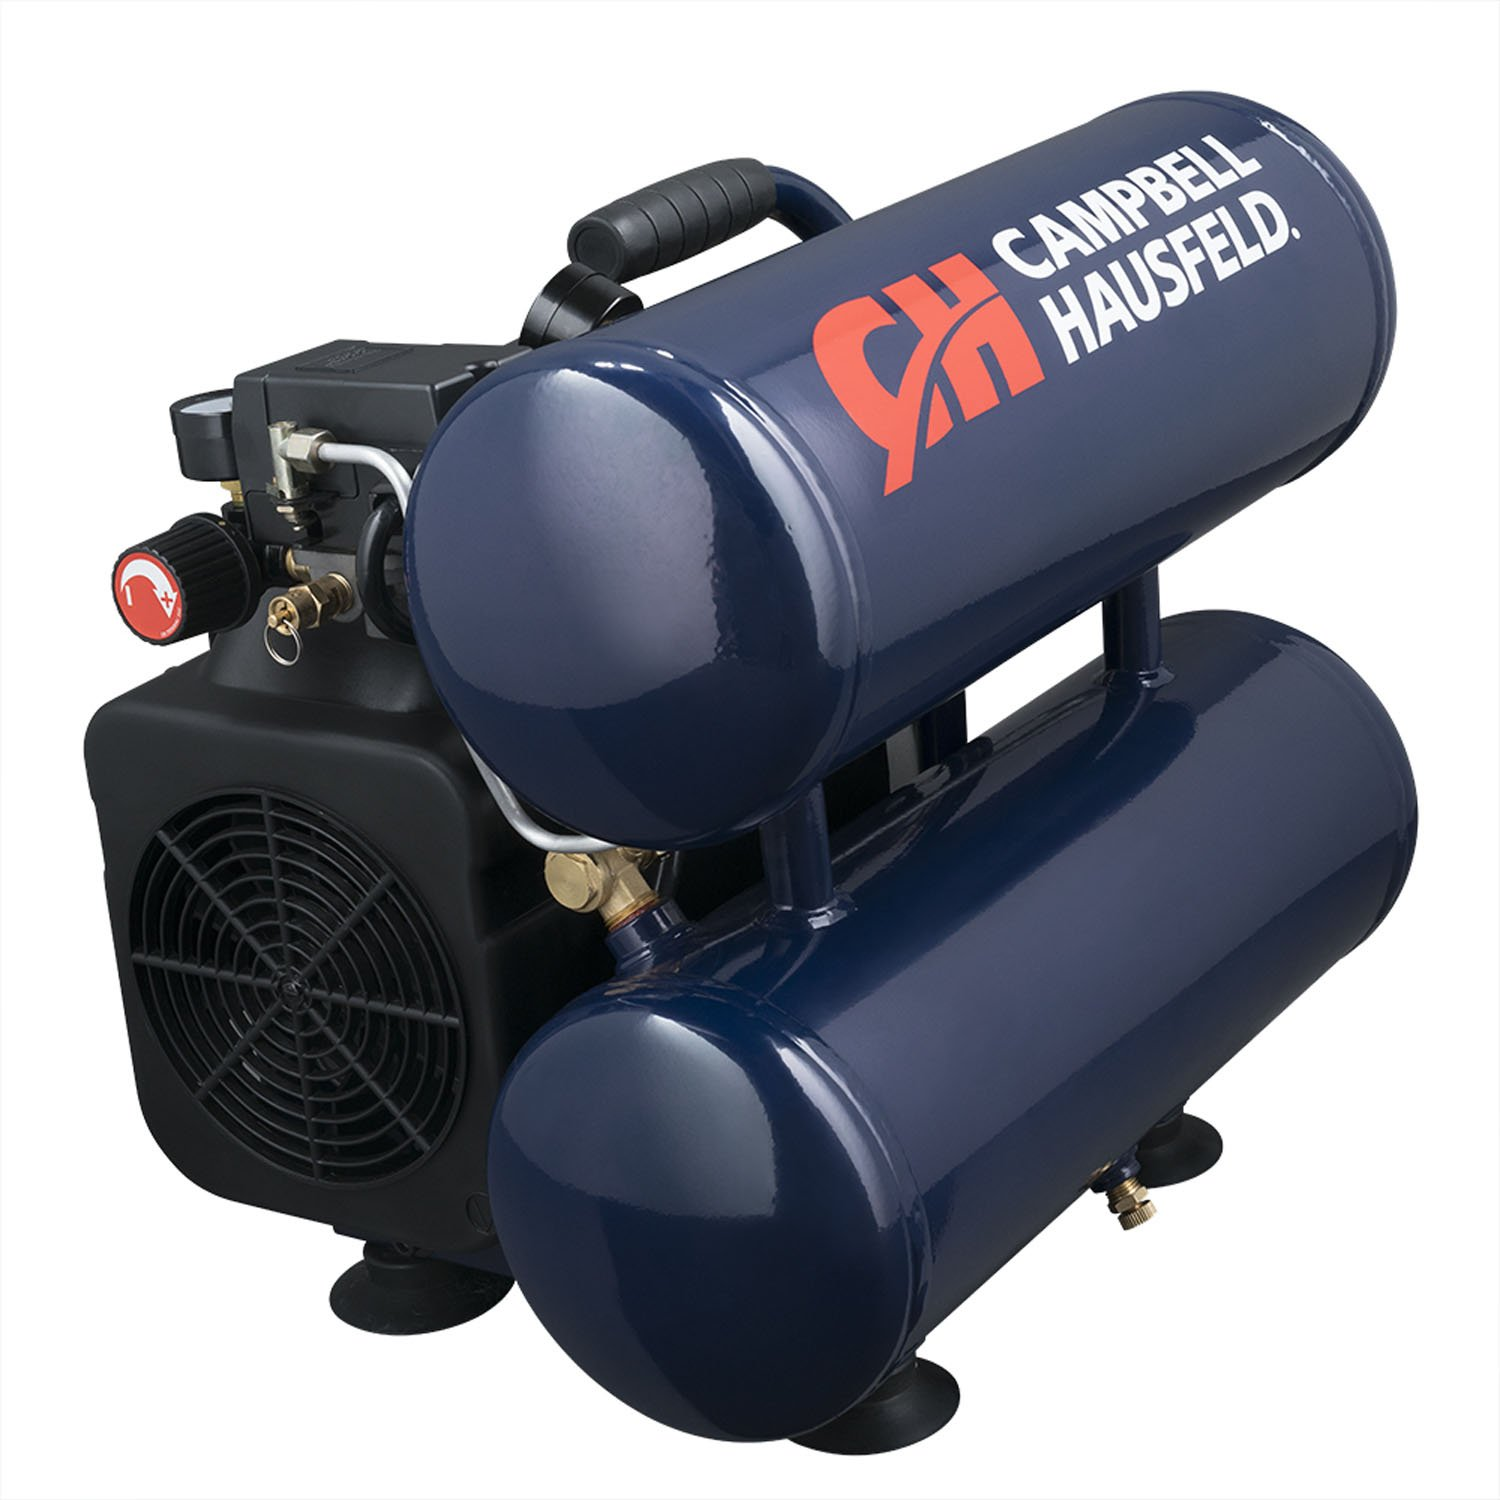 Campbell Hausfeld Air Compressor, 4-Gallon Twinstack Oil-Lubricated 3.7 CFM 1.8HP (DC040000)